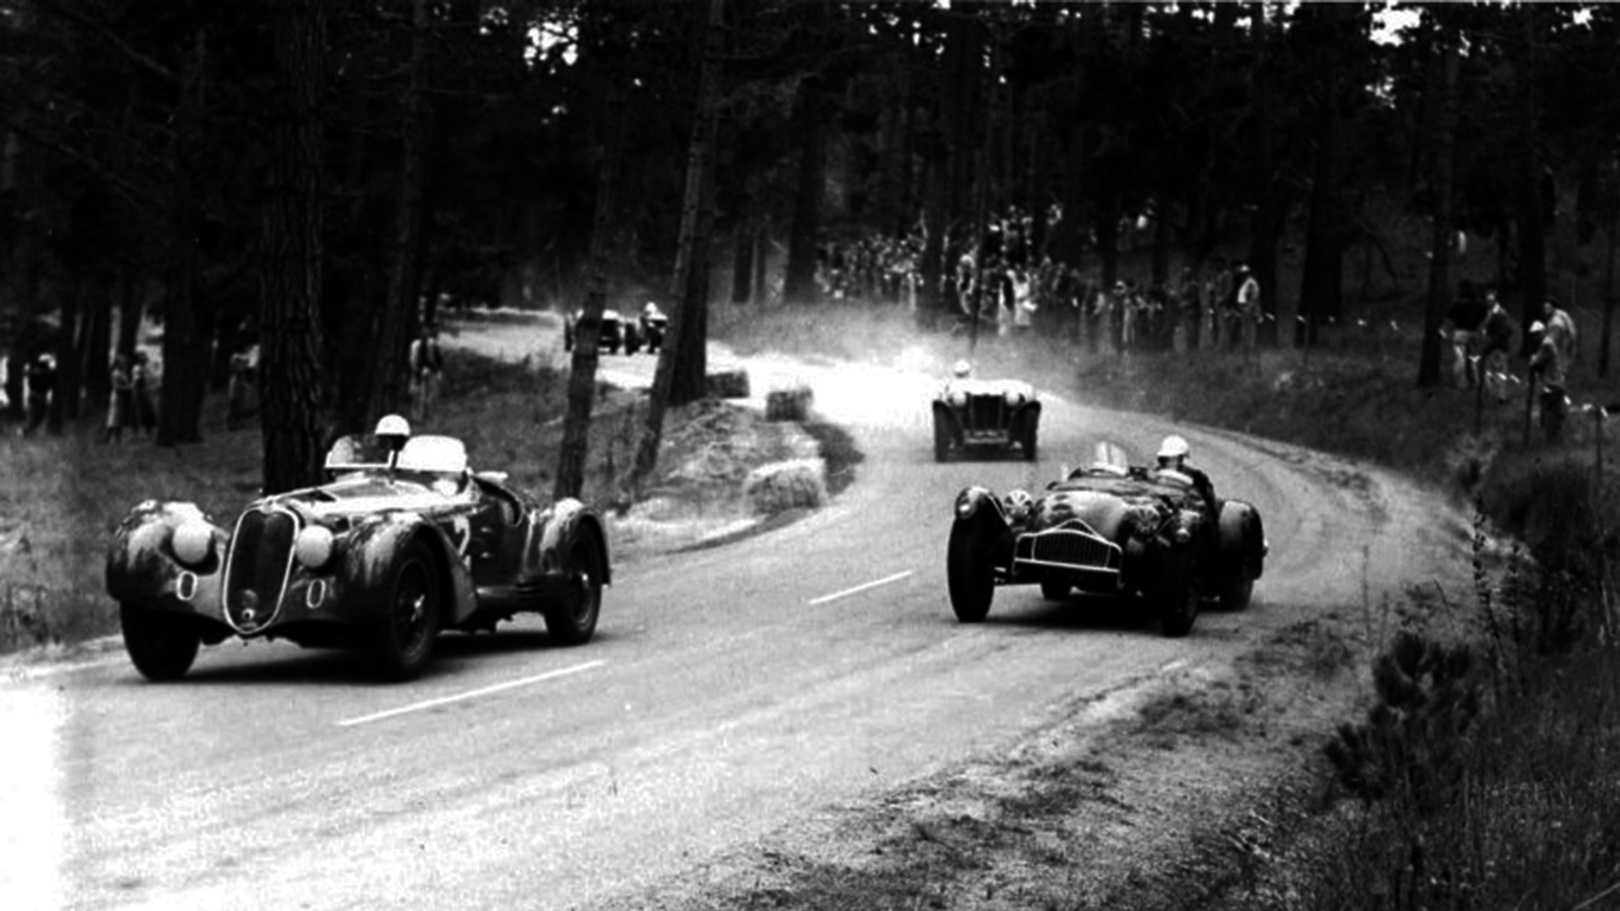 Racecar driving legend Phil Hill races an Alfa Romeo through the forests of Pebble Beach in 1951.